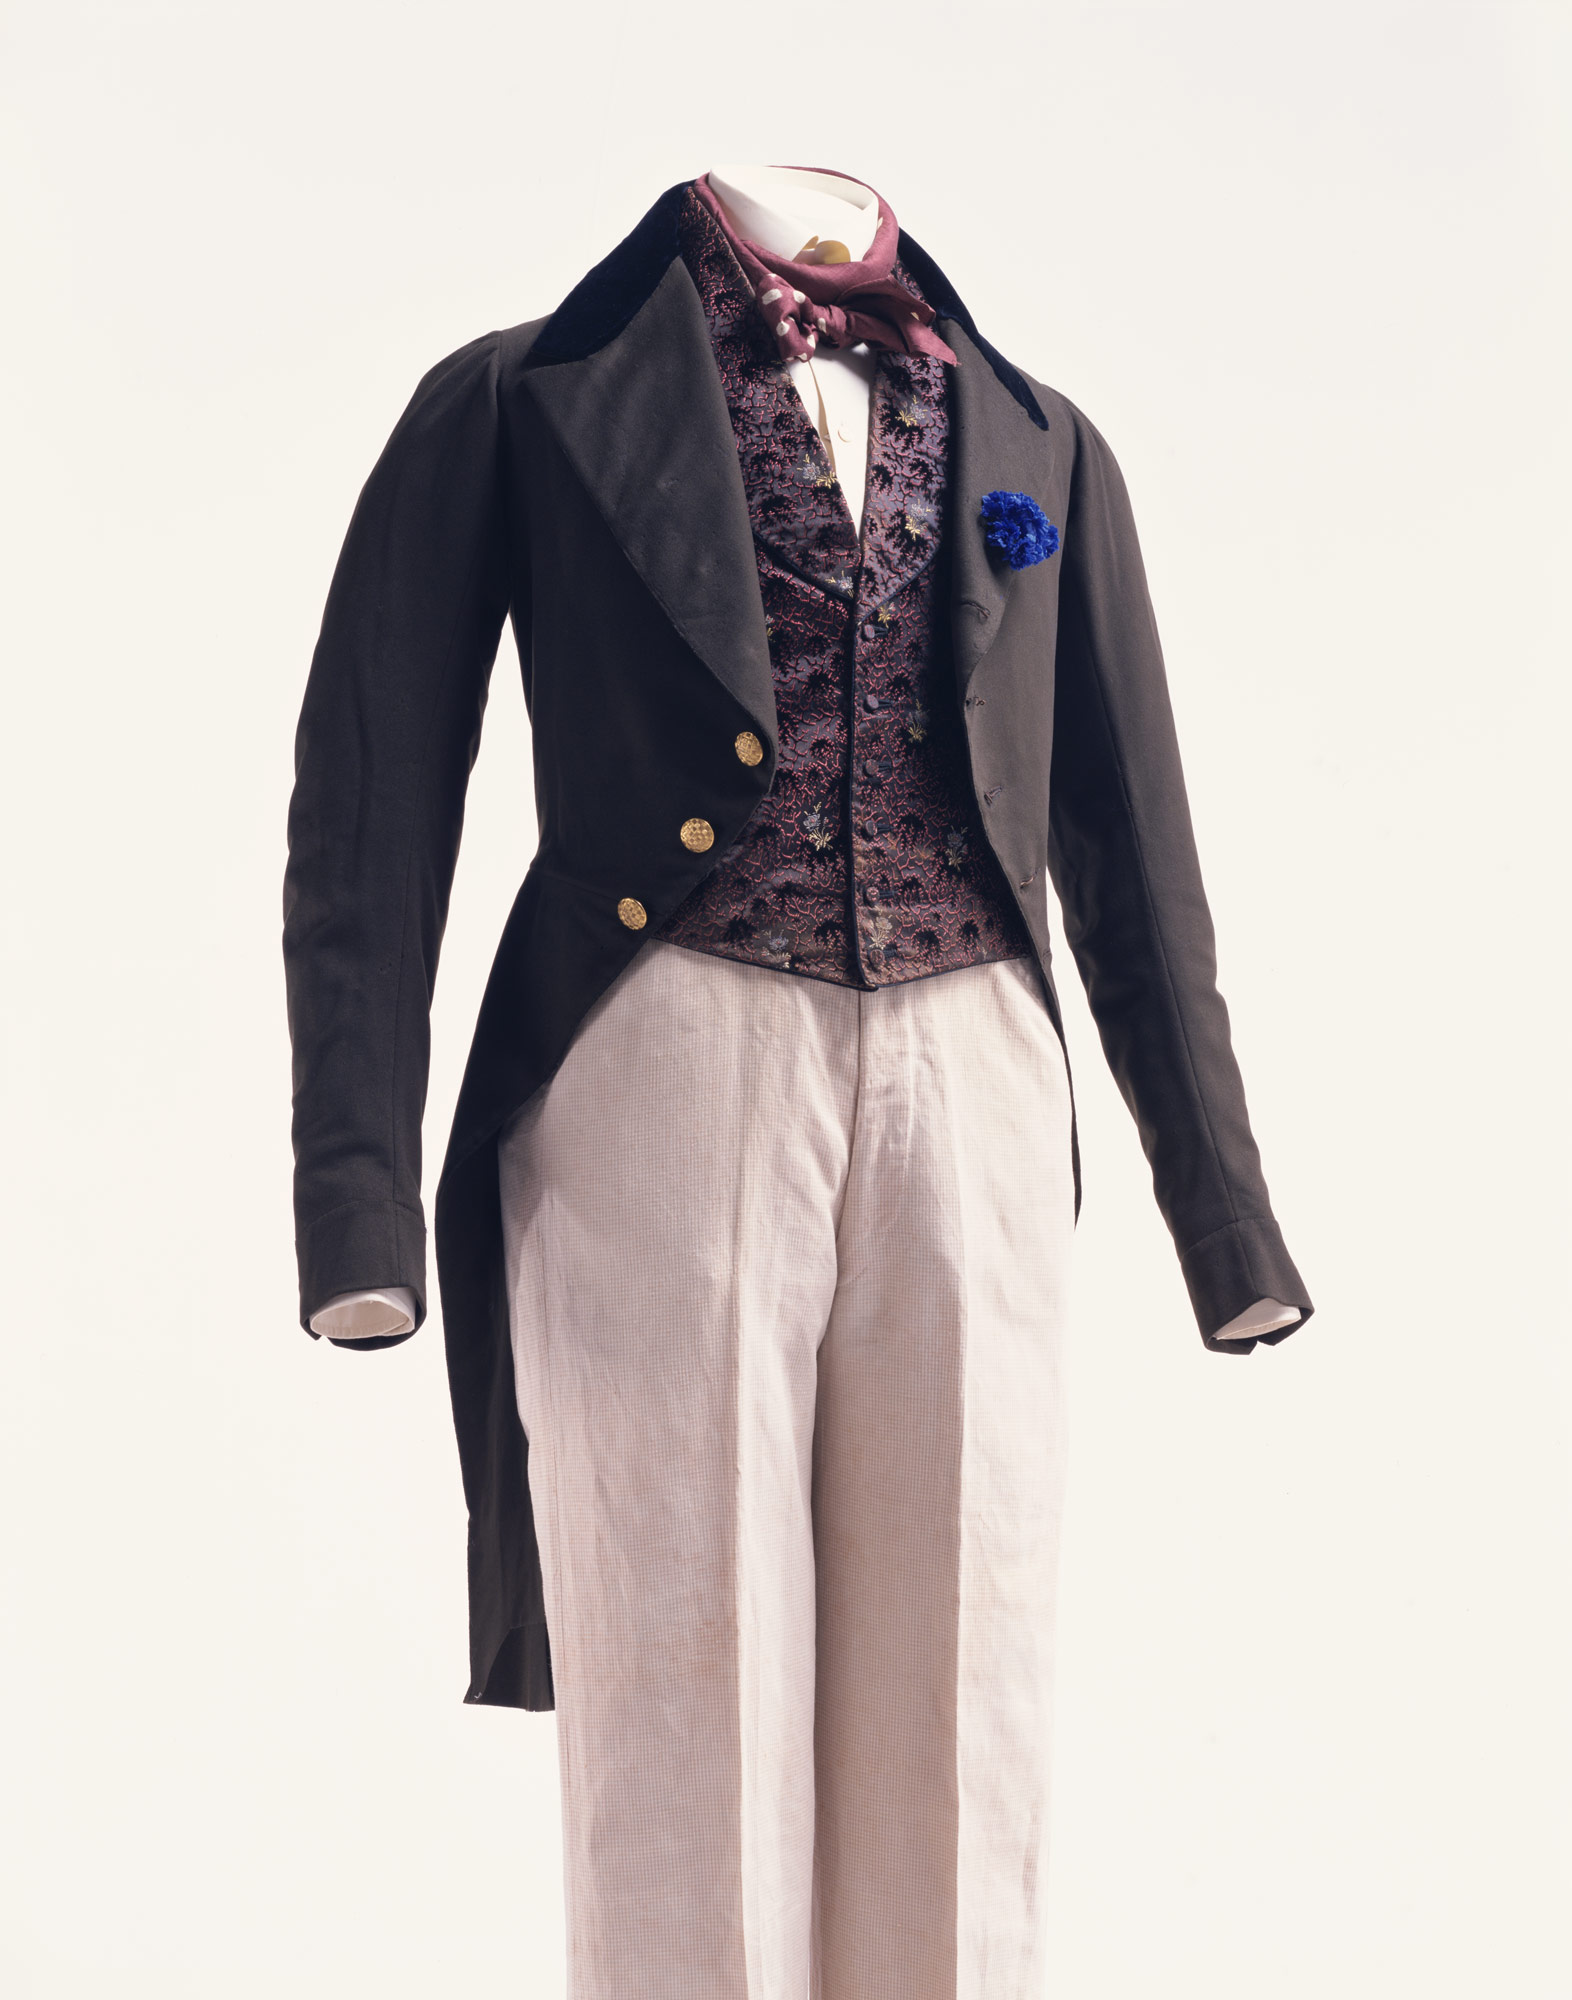 Tailcoat Costume - Fashion, Sewing Patterns, Inspiration